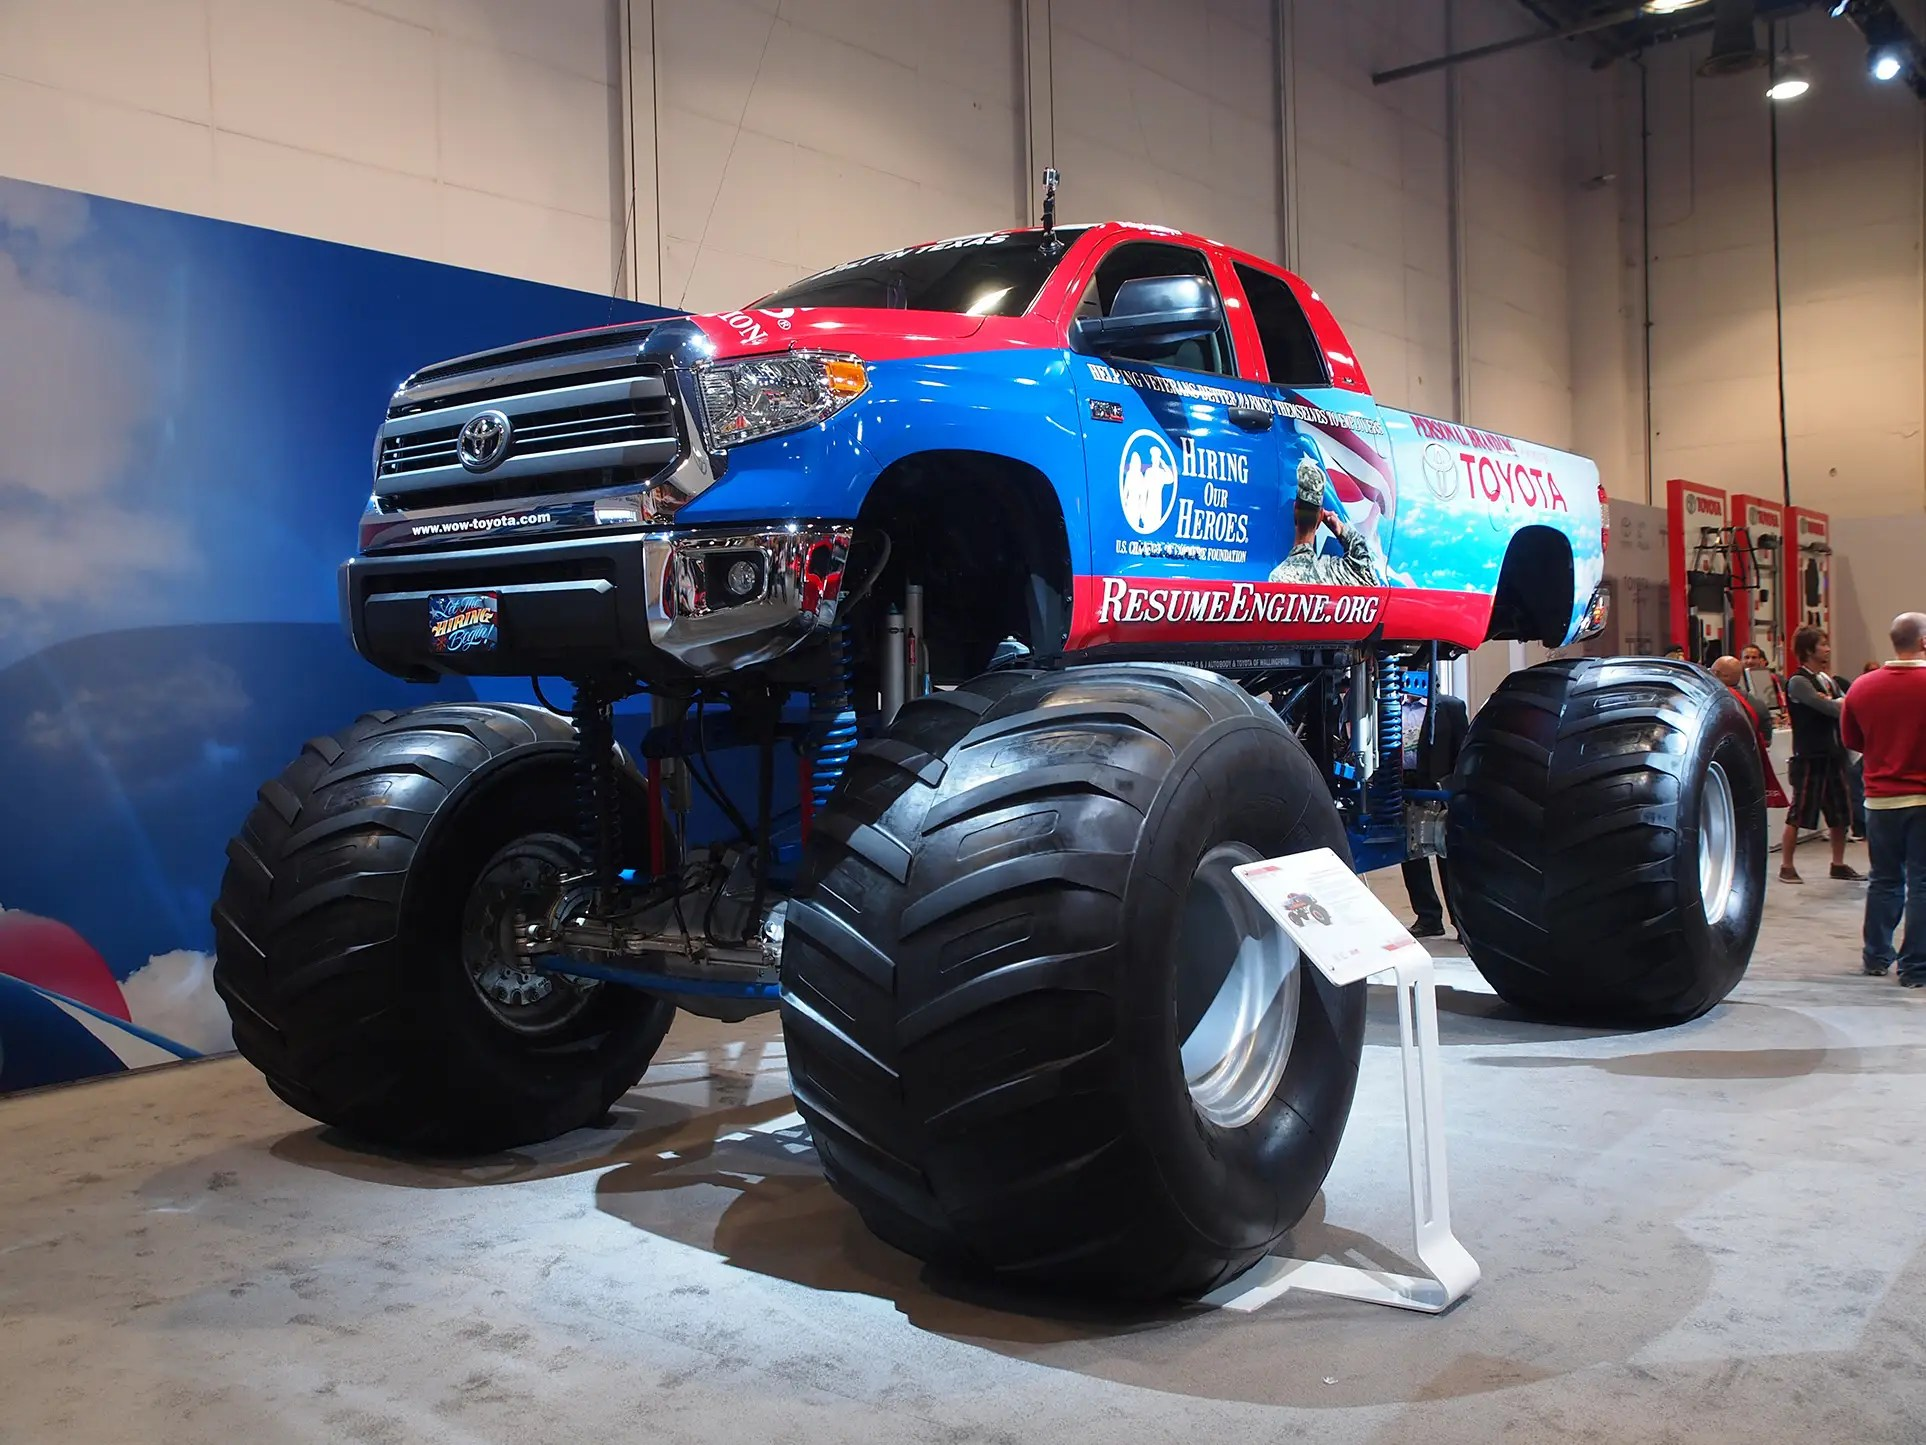 Toyota brought their Tundra monster truck to show off.